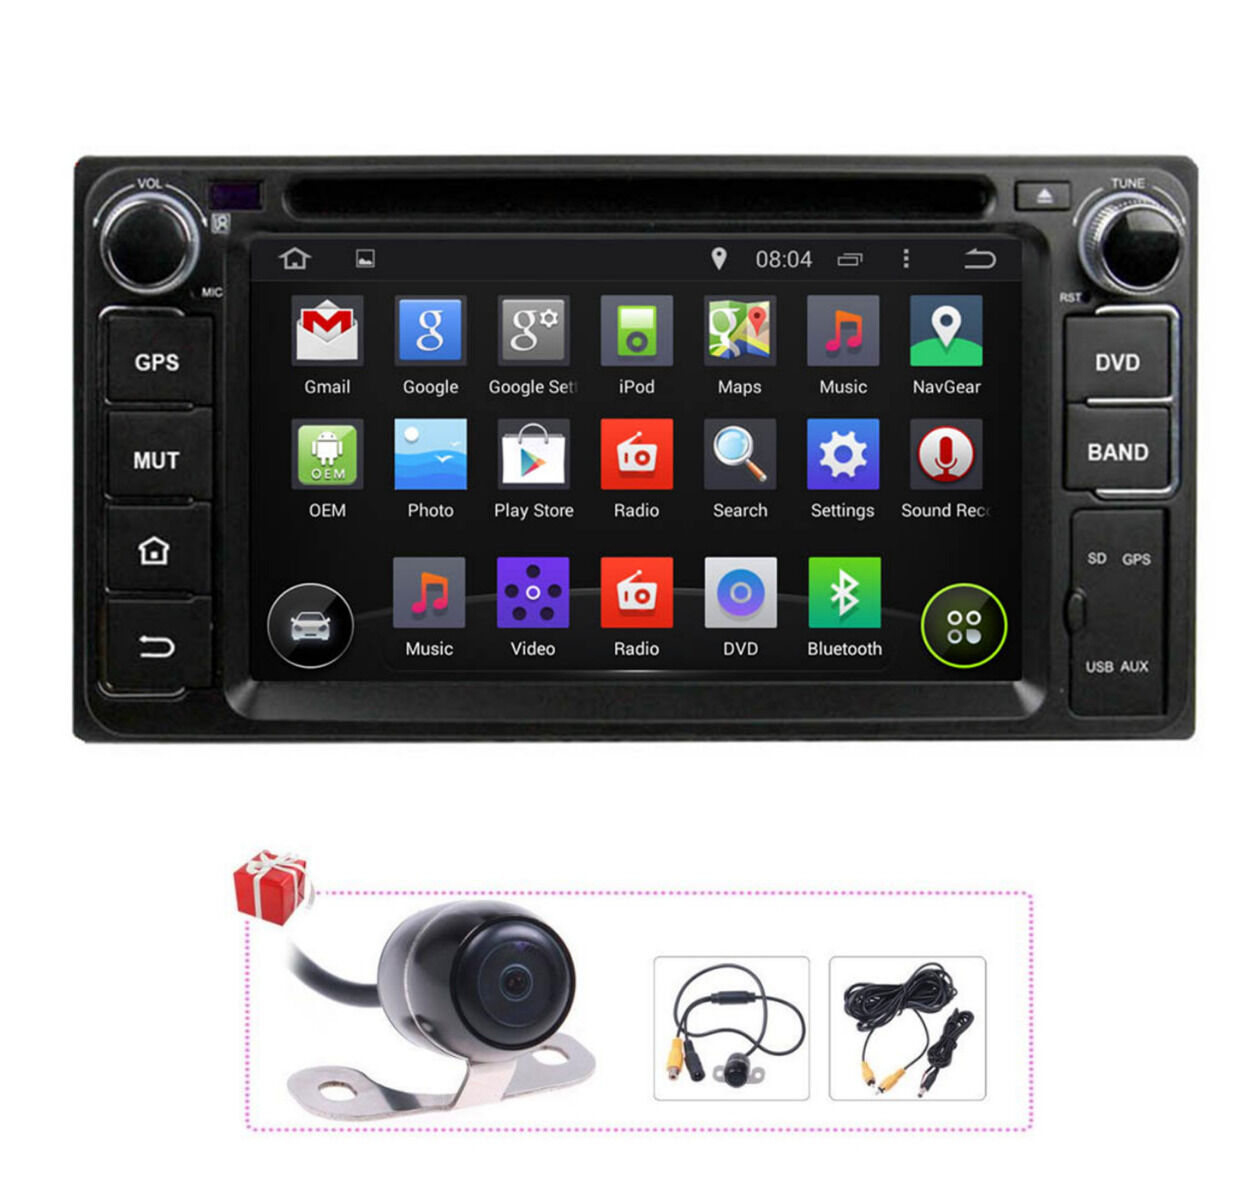 272367714938 together with 281308794653 further 201073210648 further Chevrolet Gps Chevrolet Dvd Player Chevy Navigation System also 261794080090. on toyota fortuner car gps navigation dvd radio headunit autoradio stereo